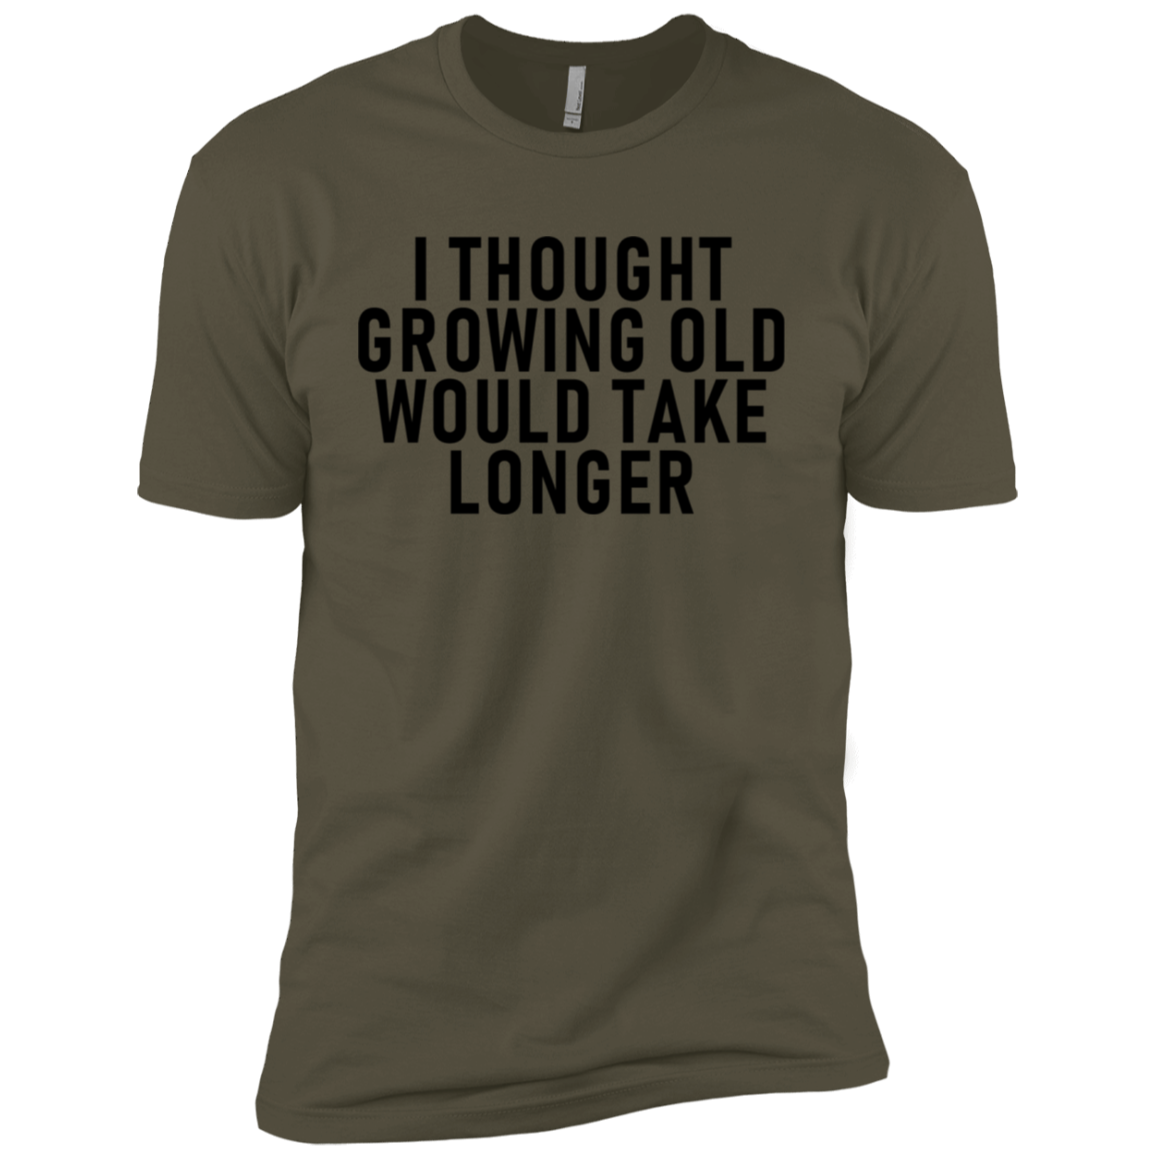 I THought Growing Old Would Take Longer Men's Classic Tee